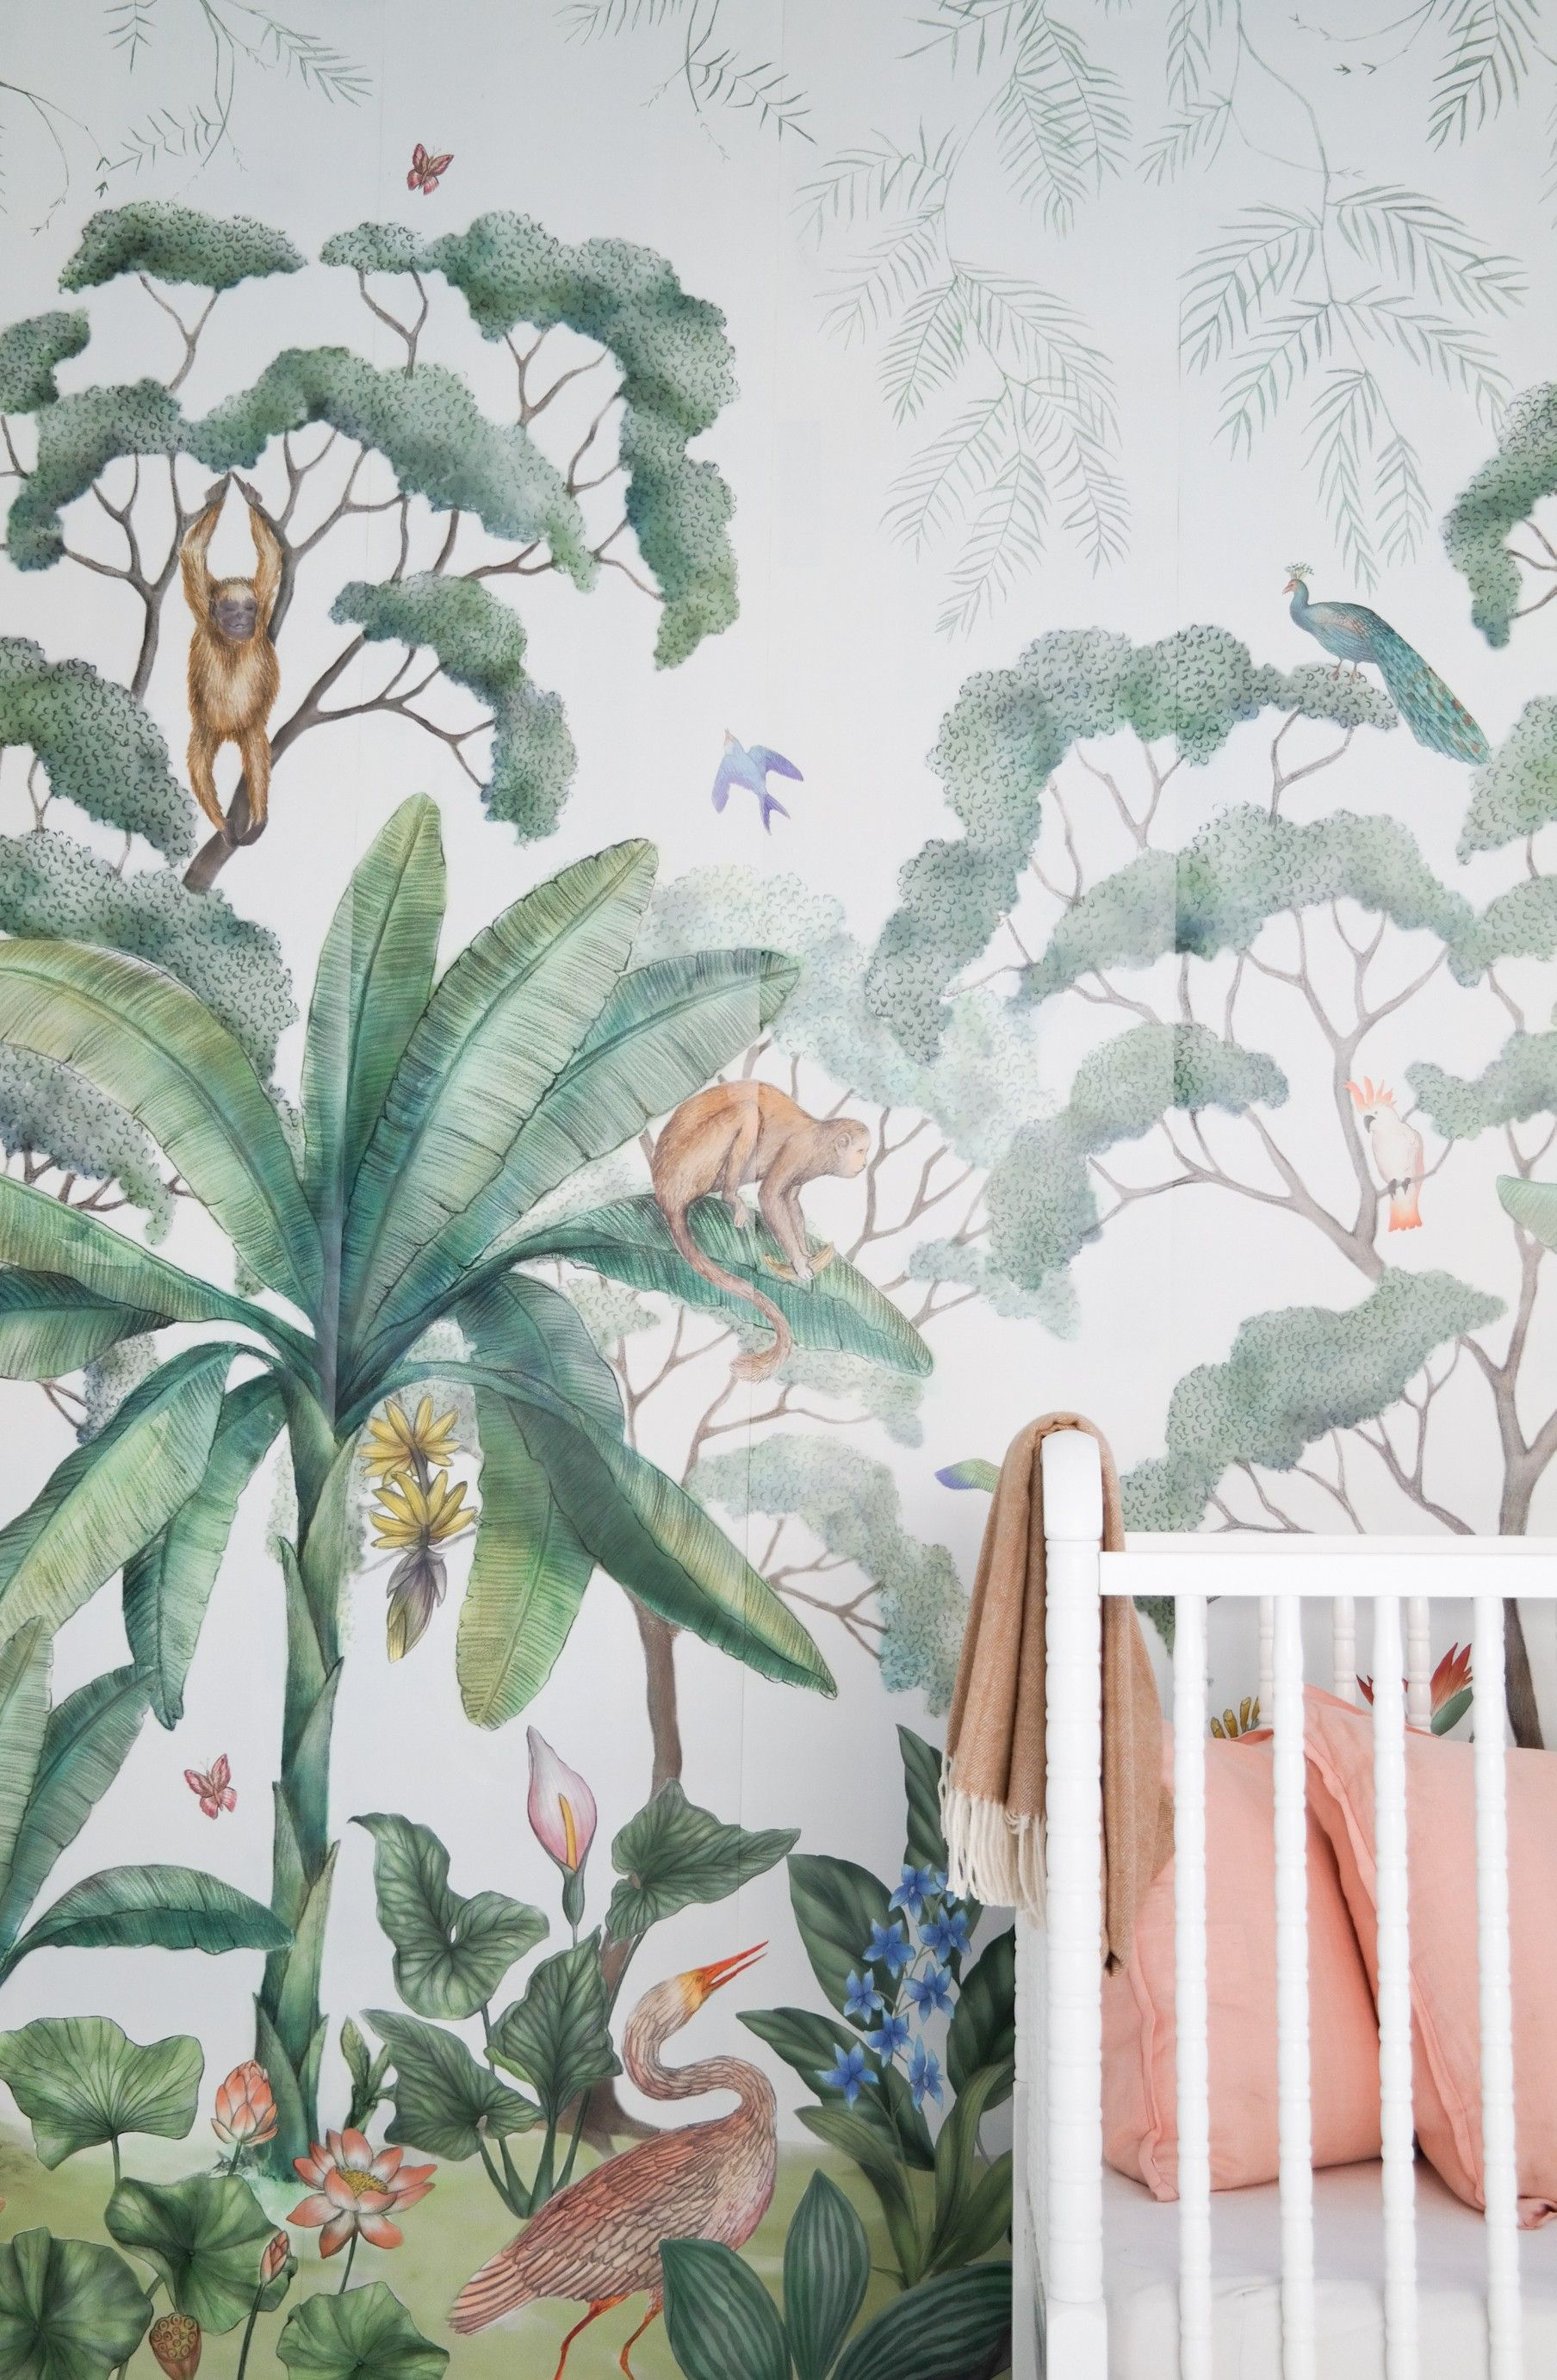 Jungle wallpaper mural wallpaper murals lush and for Children mural wallpaper